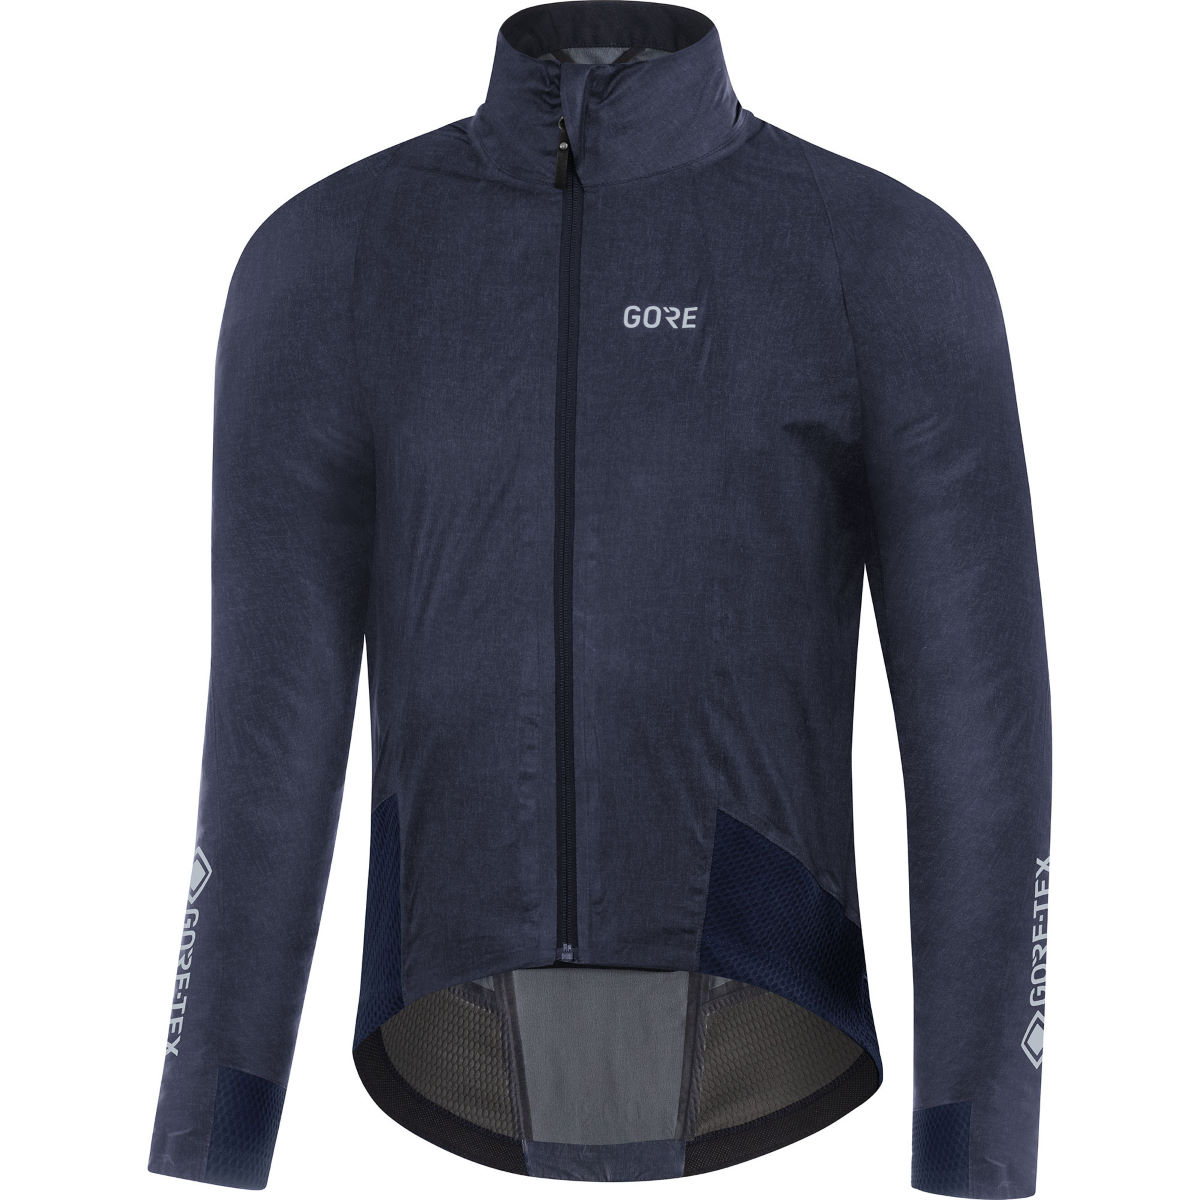 Chaqueta Gore Wear C7 GTX SD Cancellara Stretch - Chaquetas